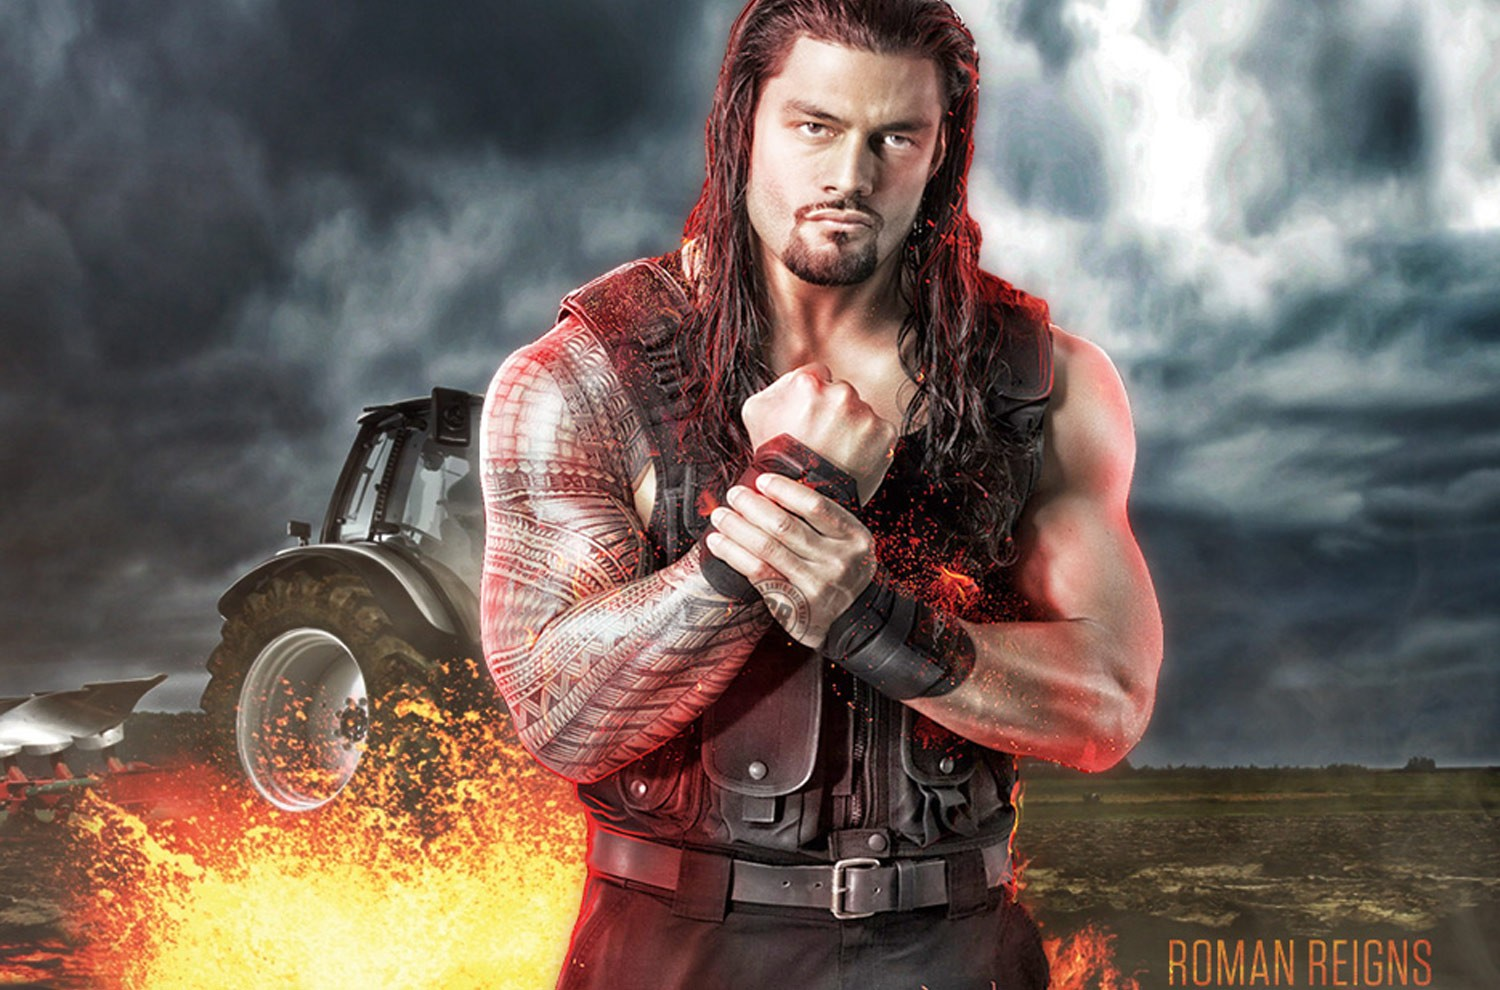 Free Download Roman Reigns Wwe Superstar Full Hd Wallpapers For Your Pc And Mac 1500x990 For Your Desktop Mobile Tablet Explore 47 Wwe Roman Reigns Wallpaper Wwe Wallpaper Wwe